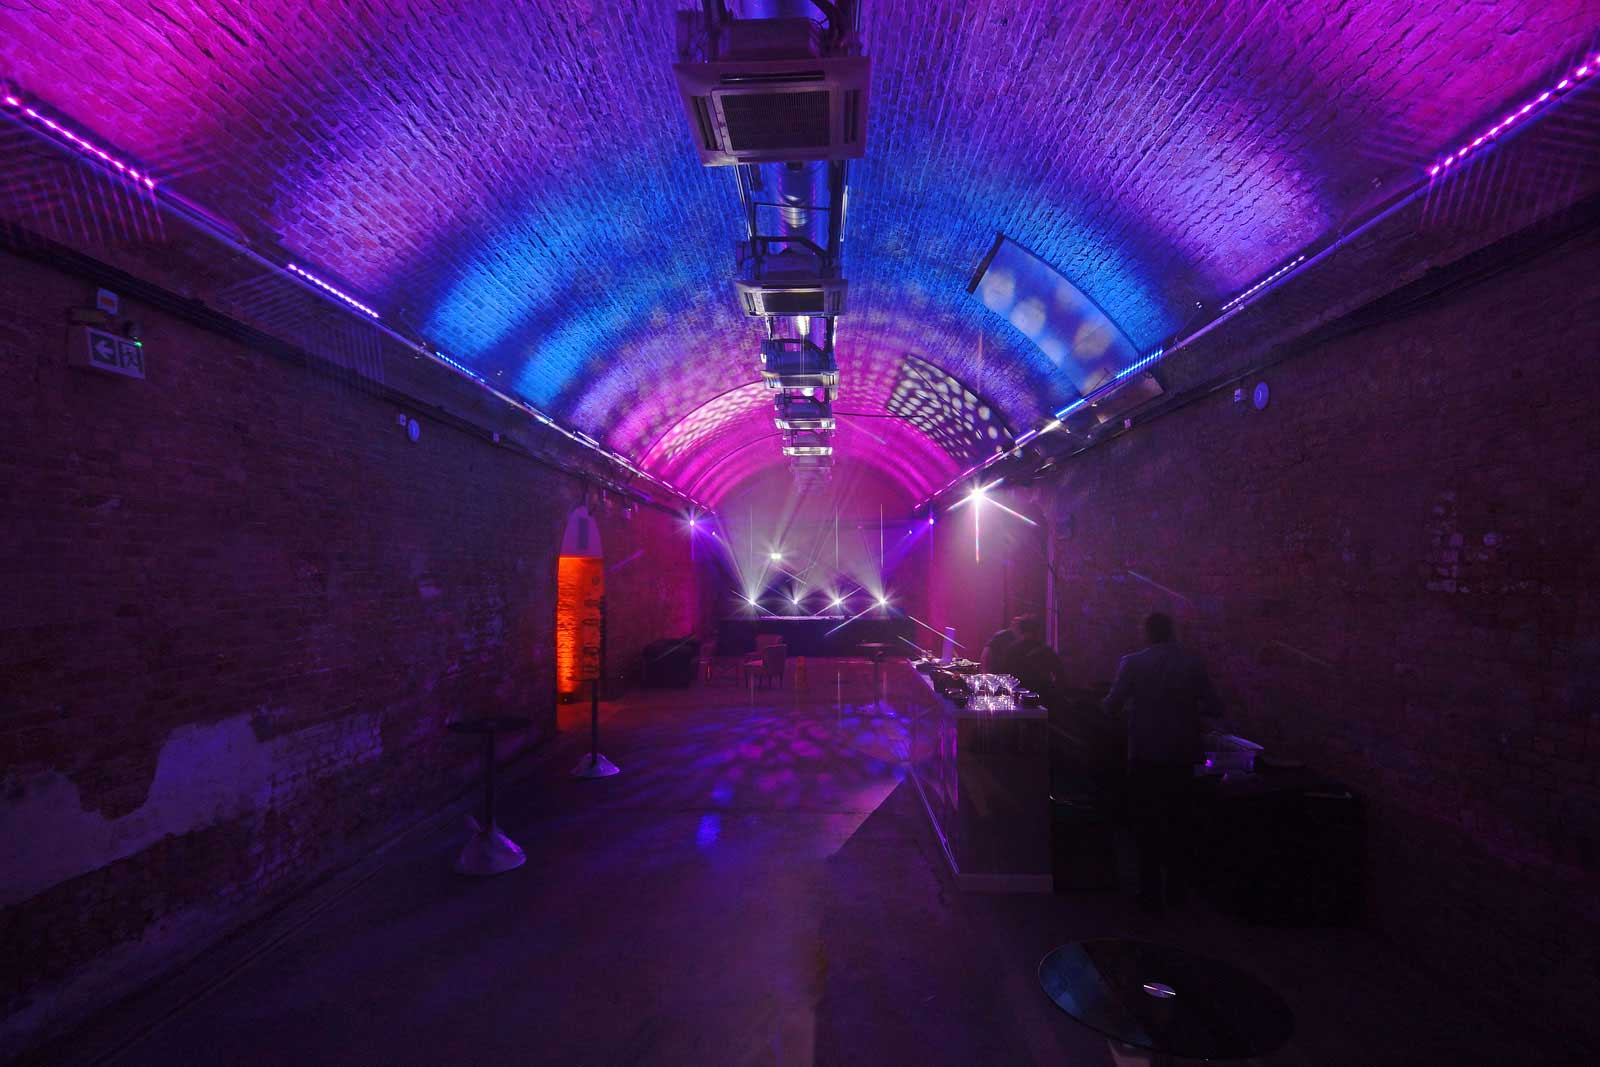 Club style lighting at the Central London event space to hire at London South Bank Event Venue represented by VenuesLDN.co.uk